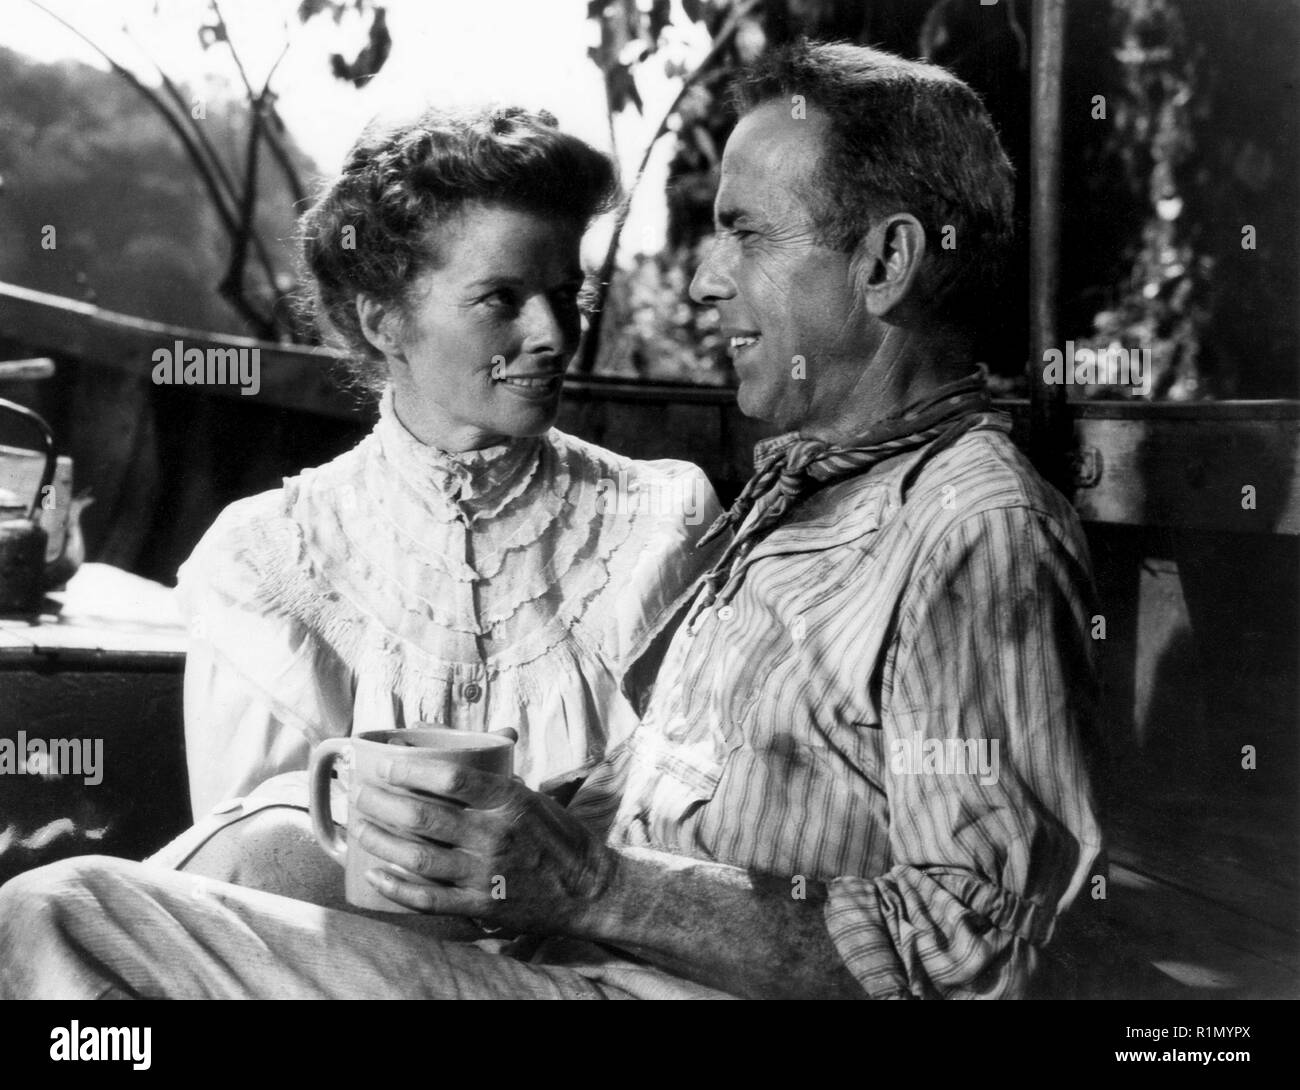 The African Queen is a 1951 British-American adventure film adapted from the 1935 novel of ... Samuel Sayer (Robert Morley) and his sister Rose (Katharine Hepburn Hollywood Photo Archive / MediaPunch - Stock Image